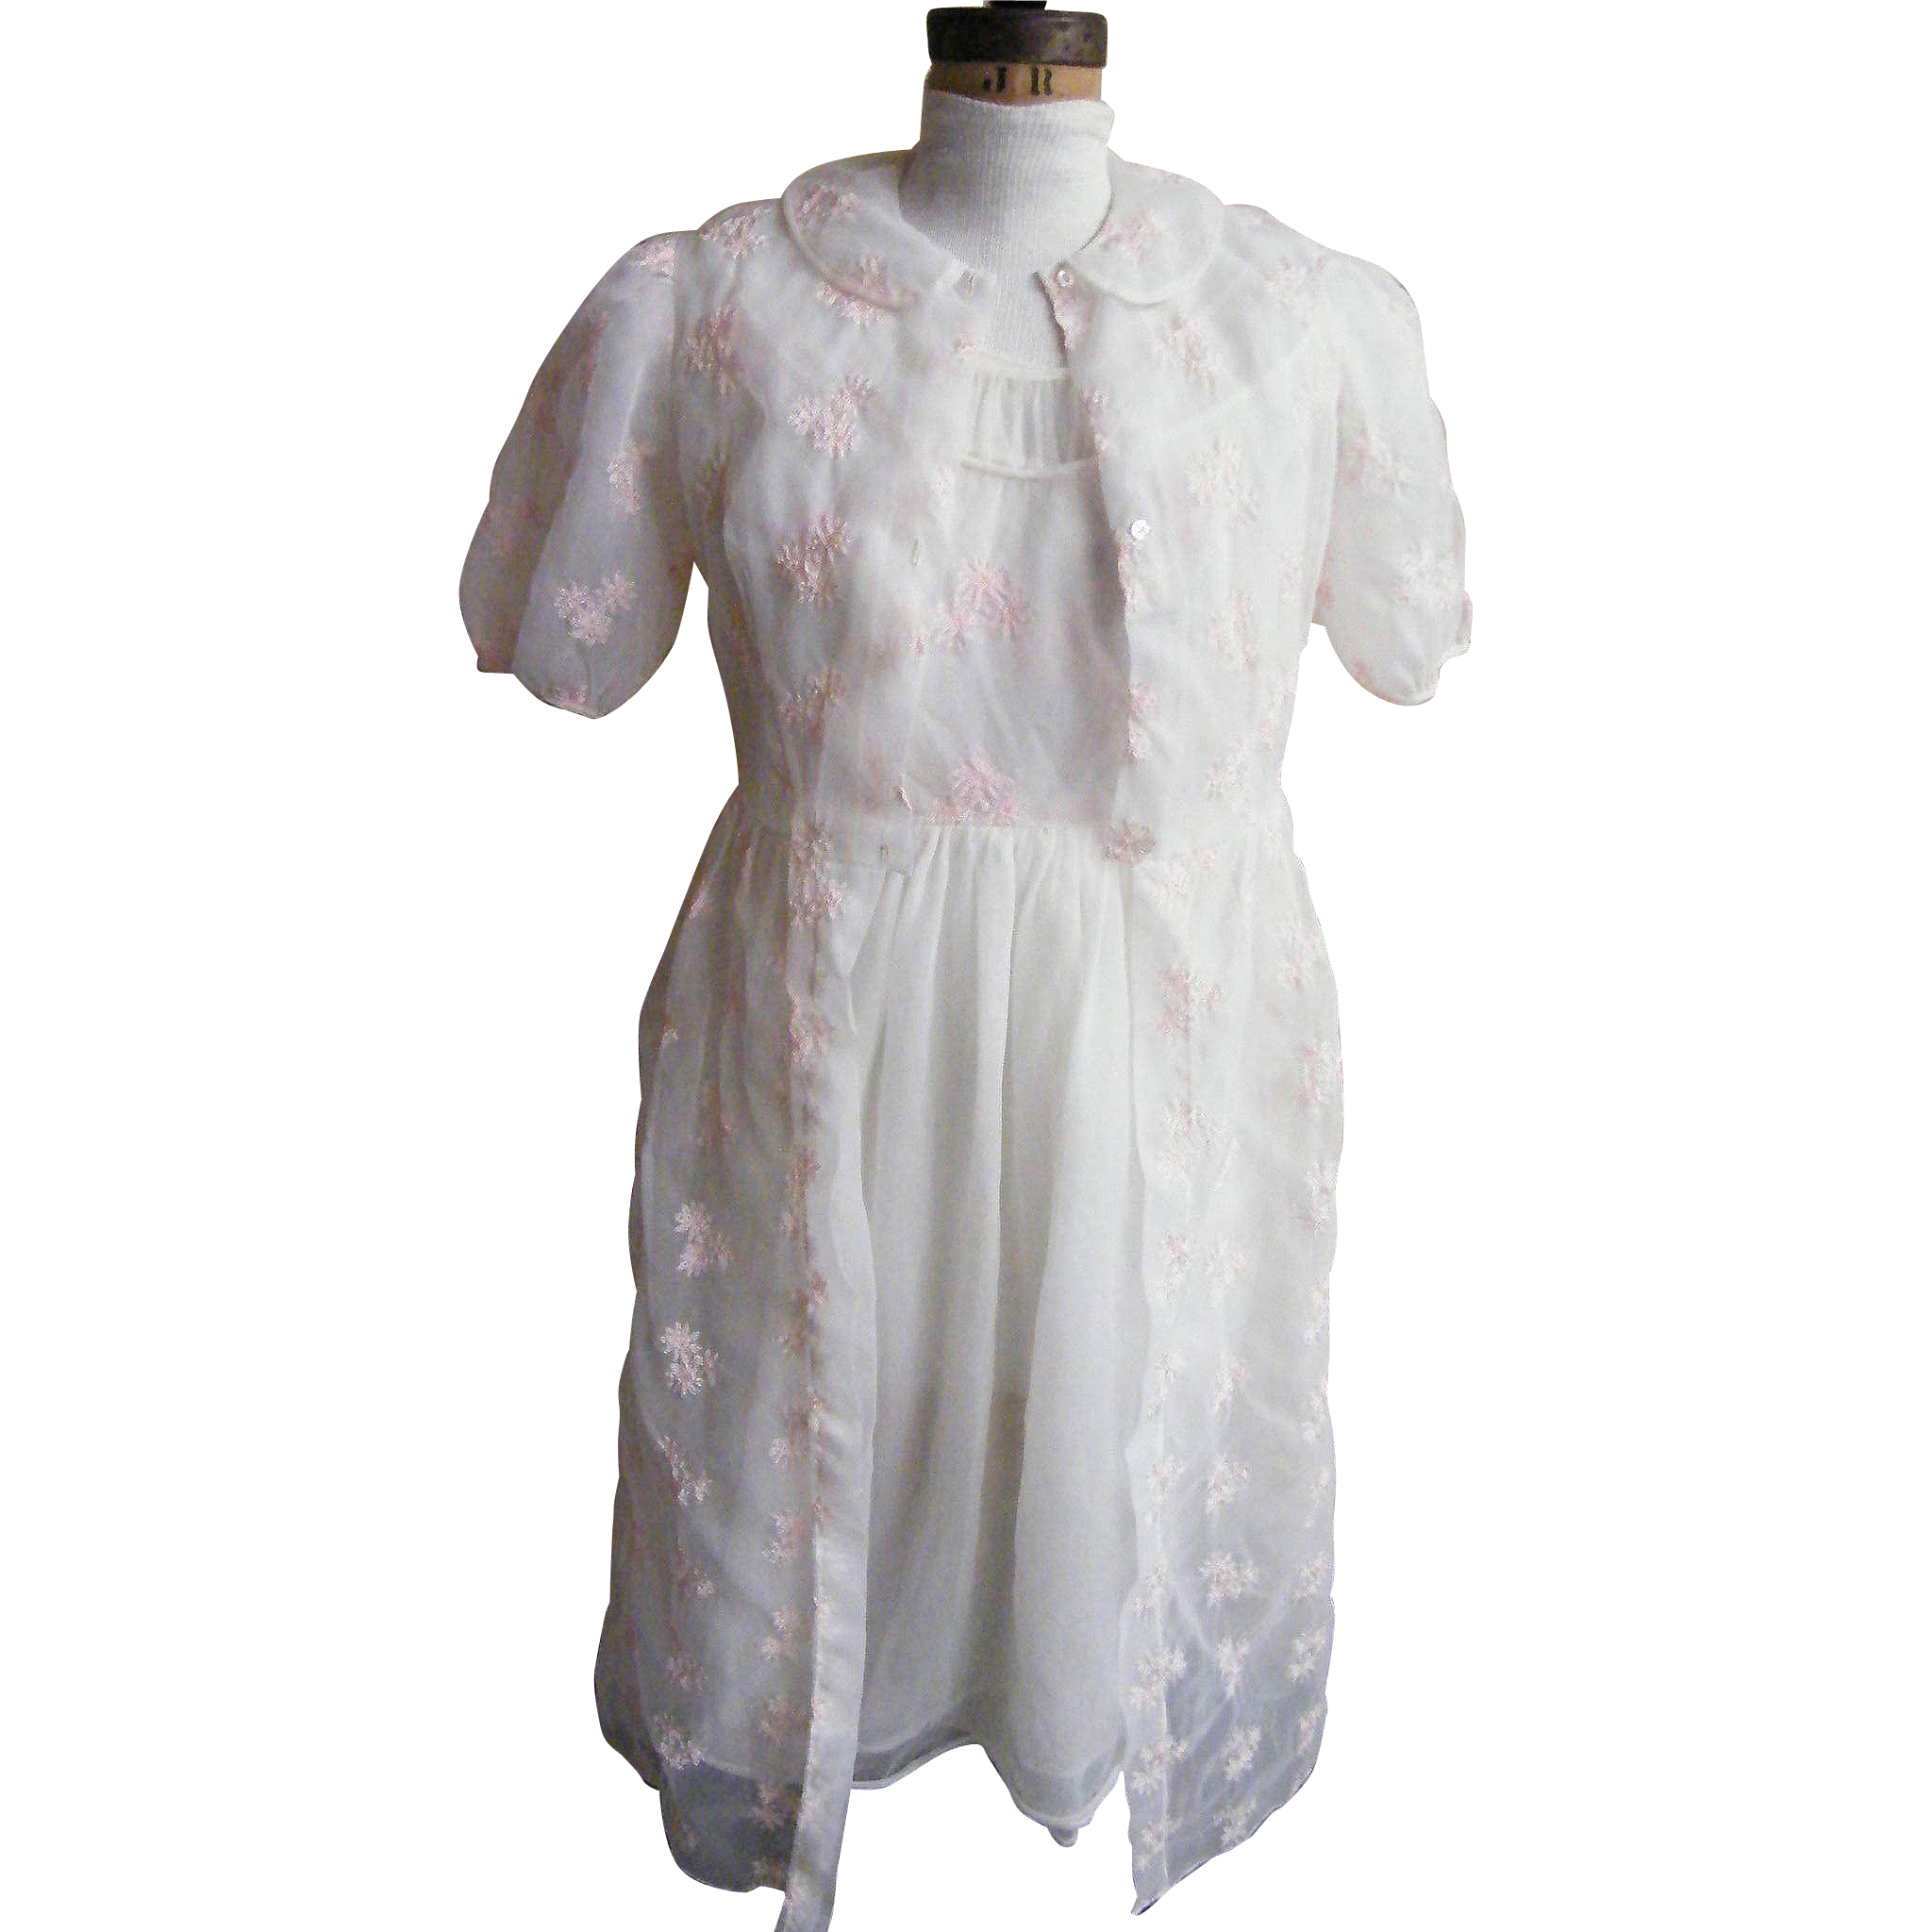 Vintage 1950's And 1960's Peignoir Set Robe And Gown White Nylon With Pale Pink Shifili Embroidered Flora Clusters